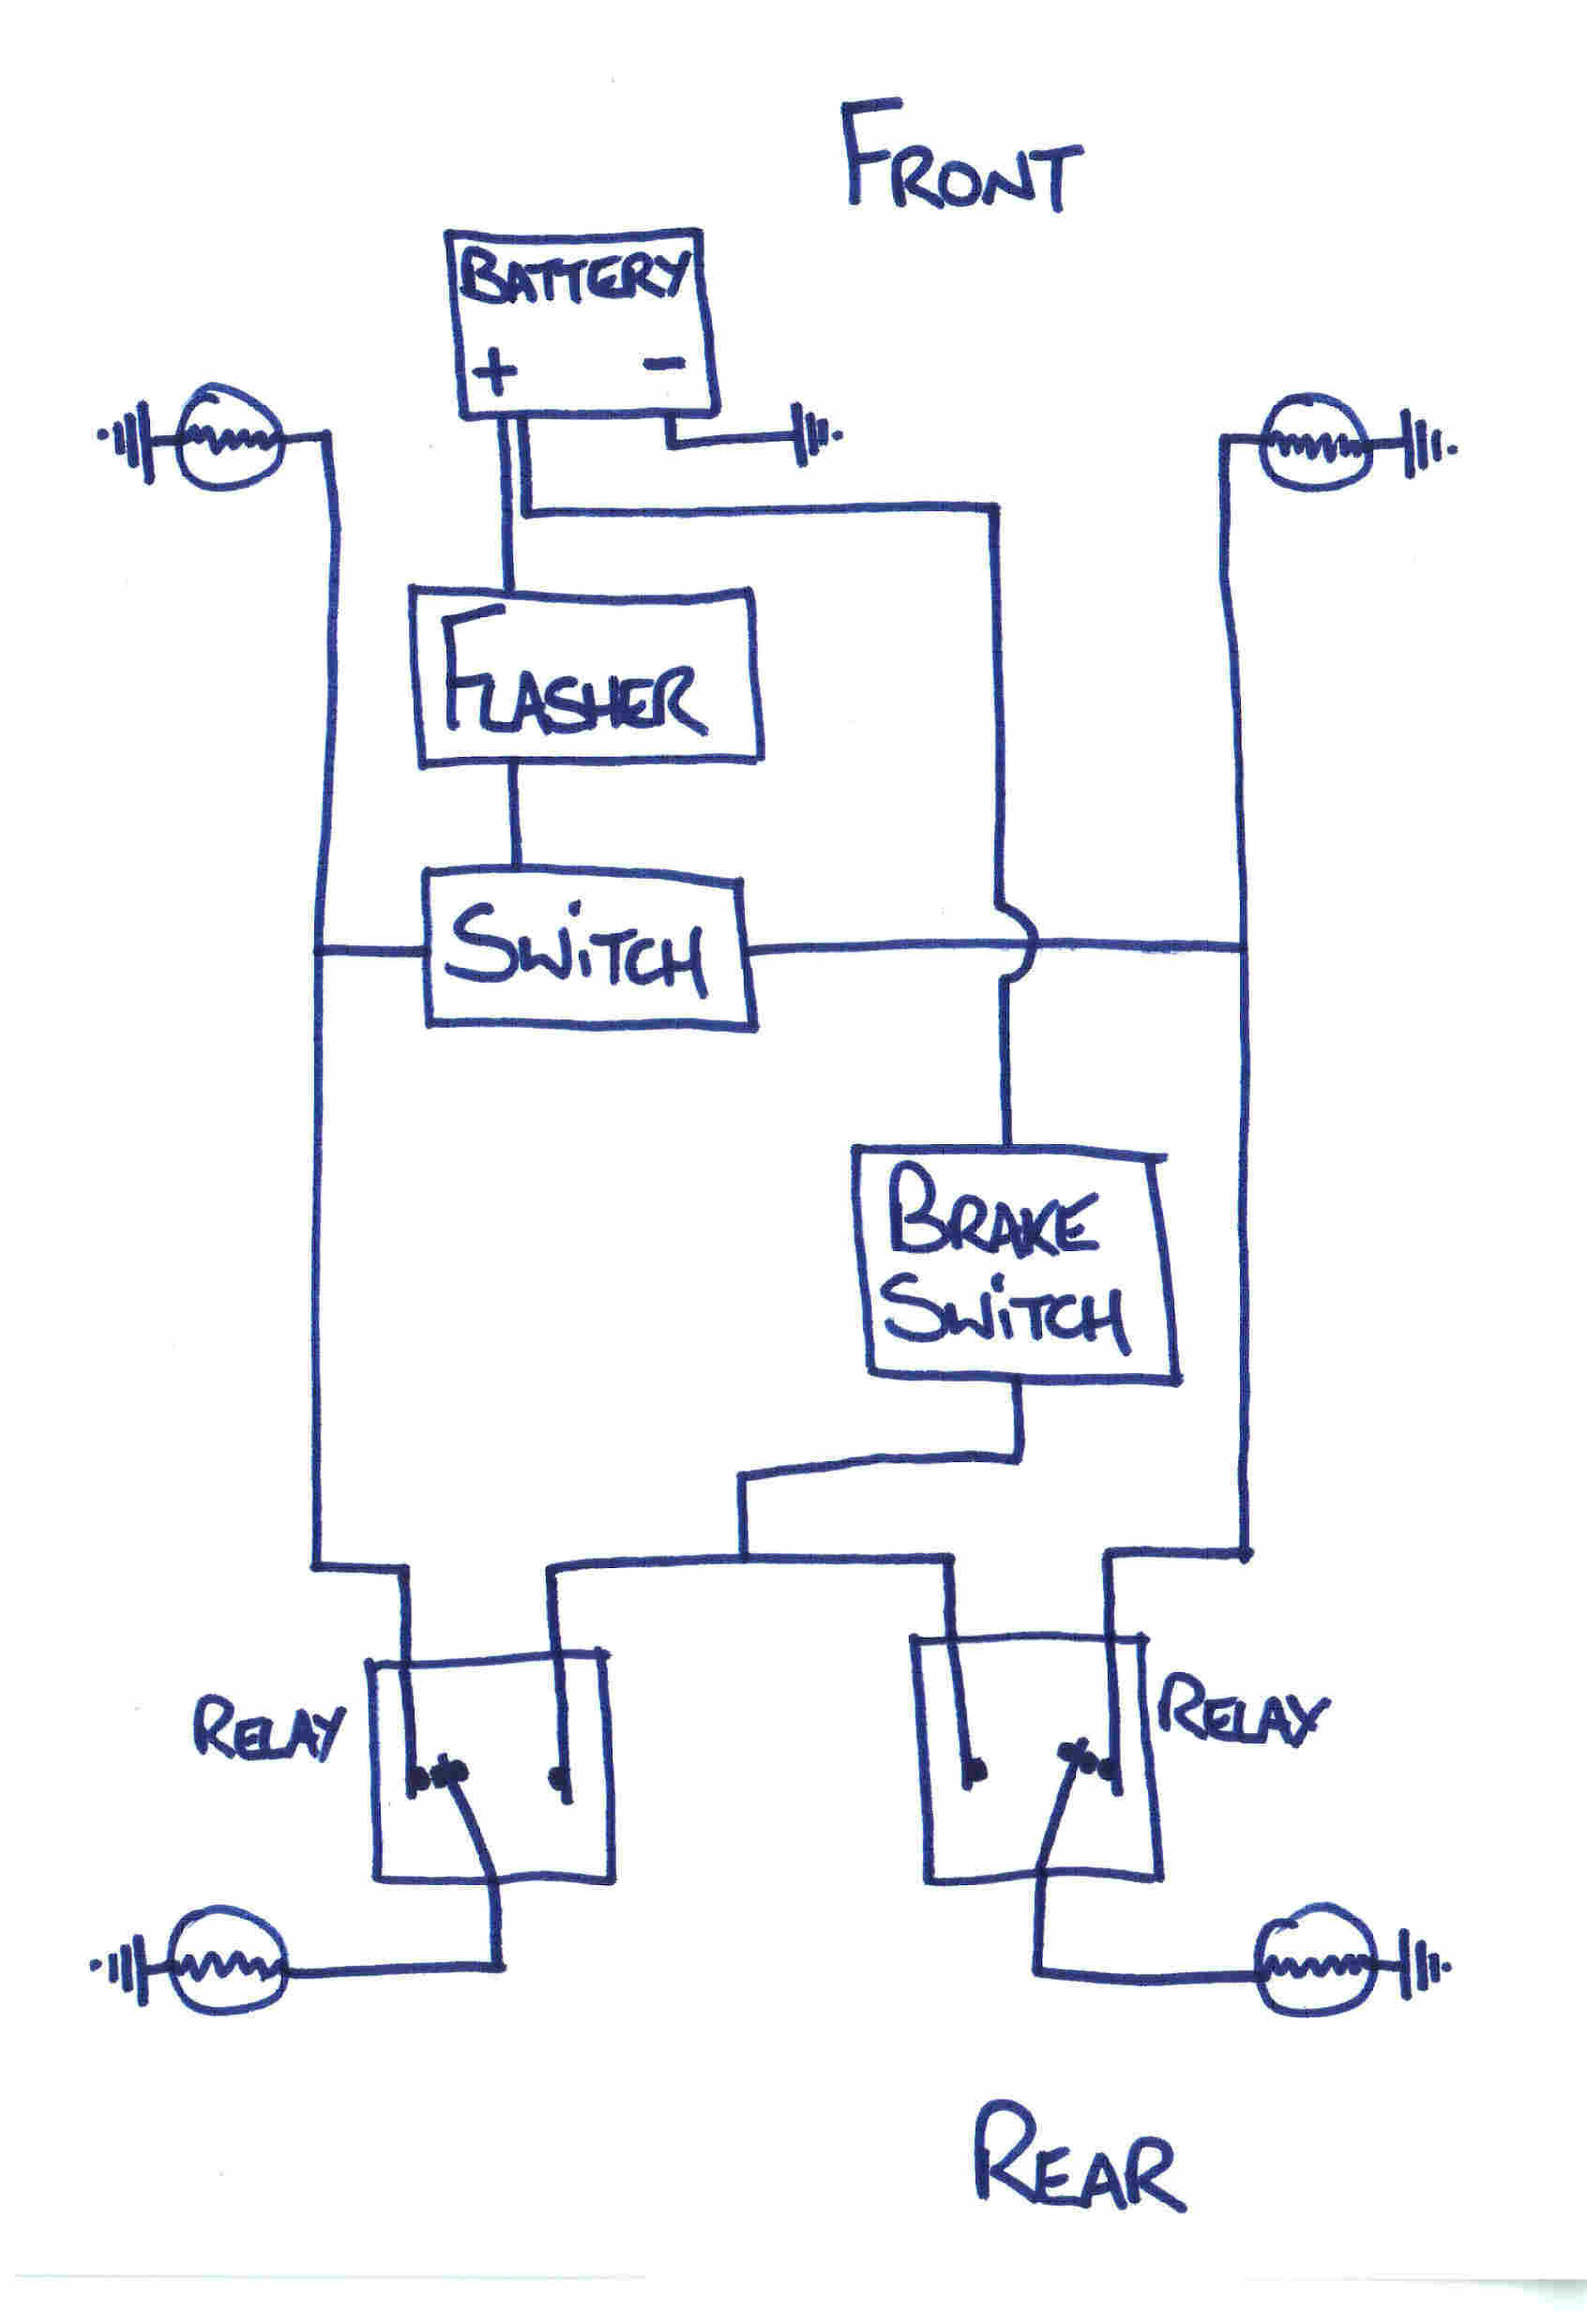 Modern Flasher Circuits